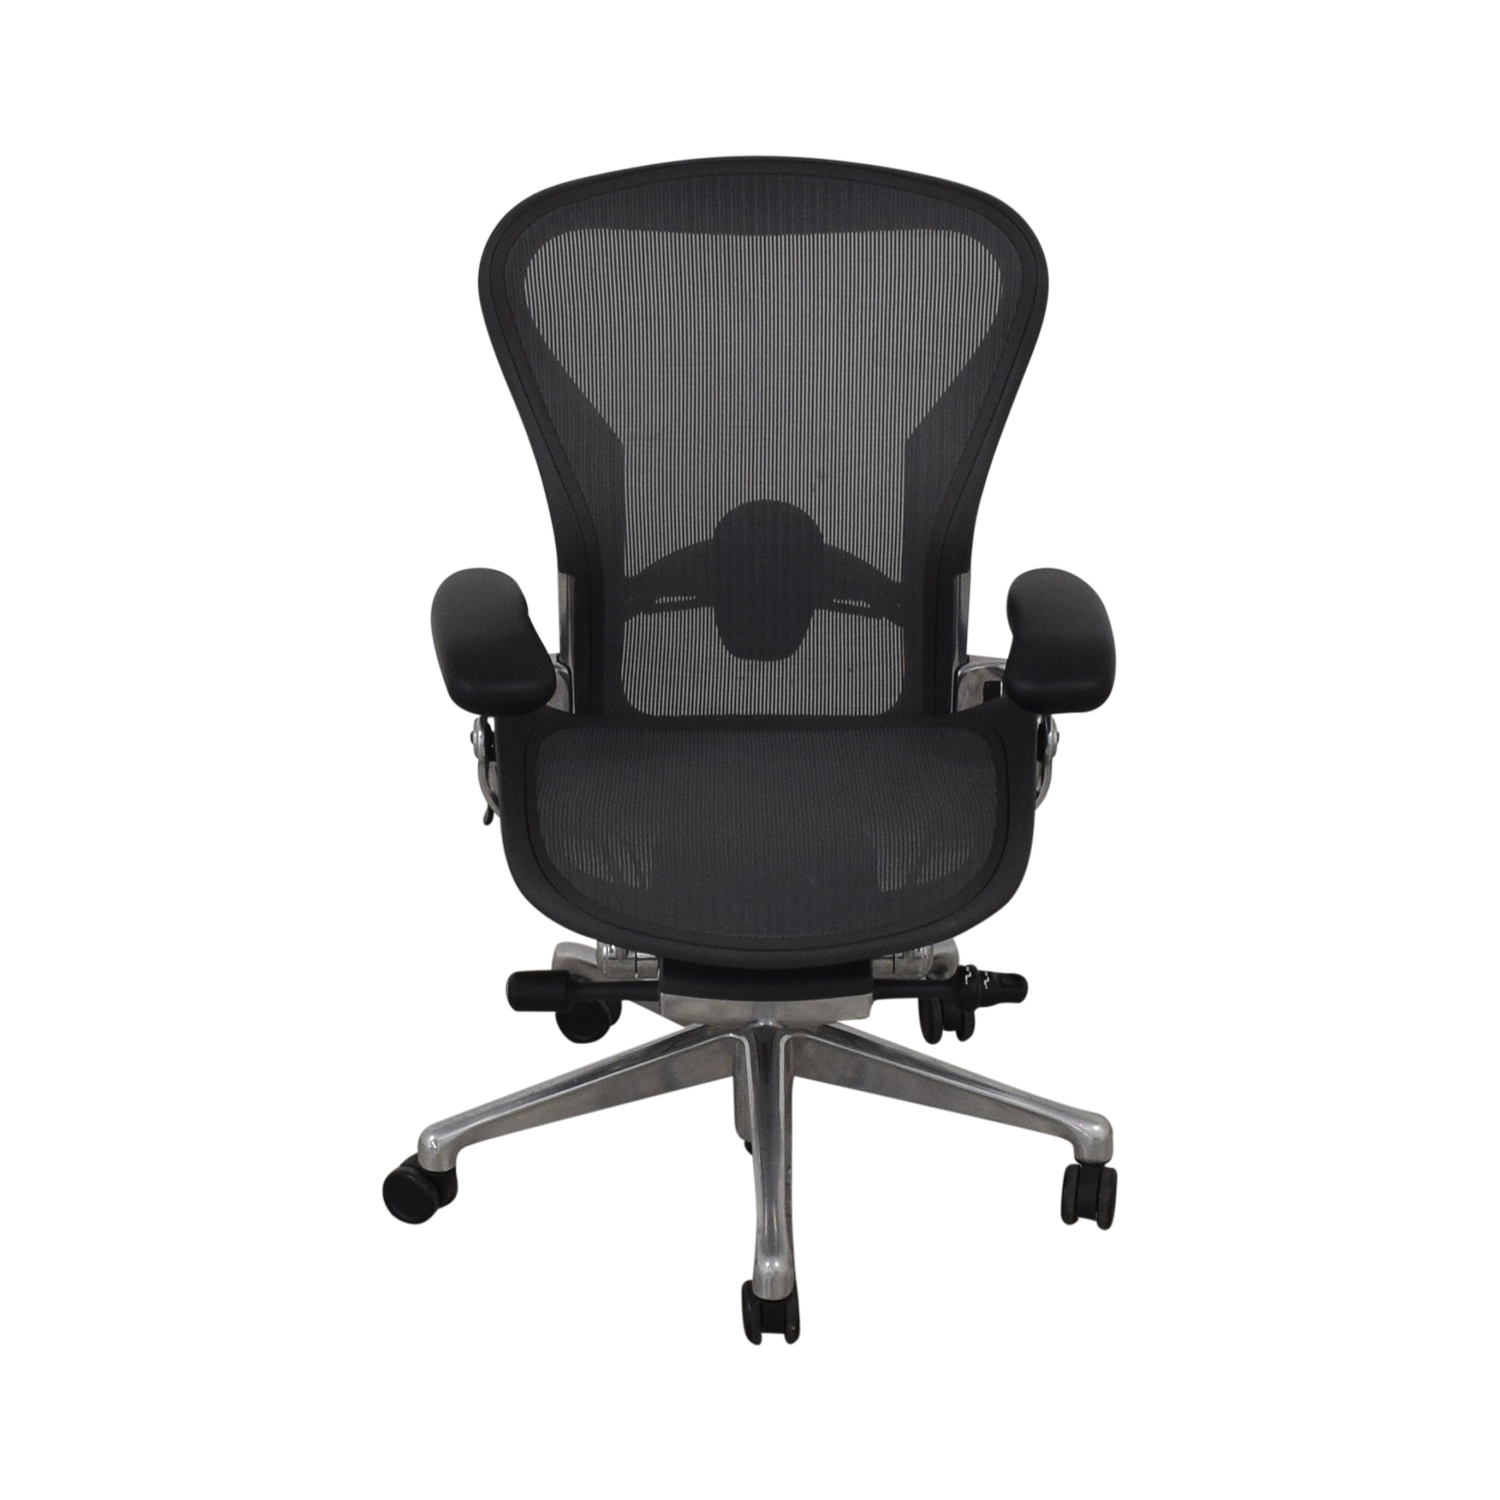 Herman Miller Herman Miller Aeron Size B Office Chair discount